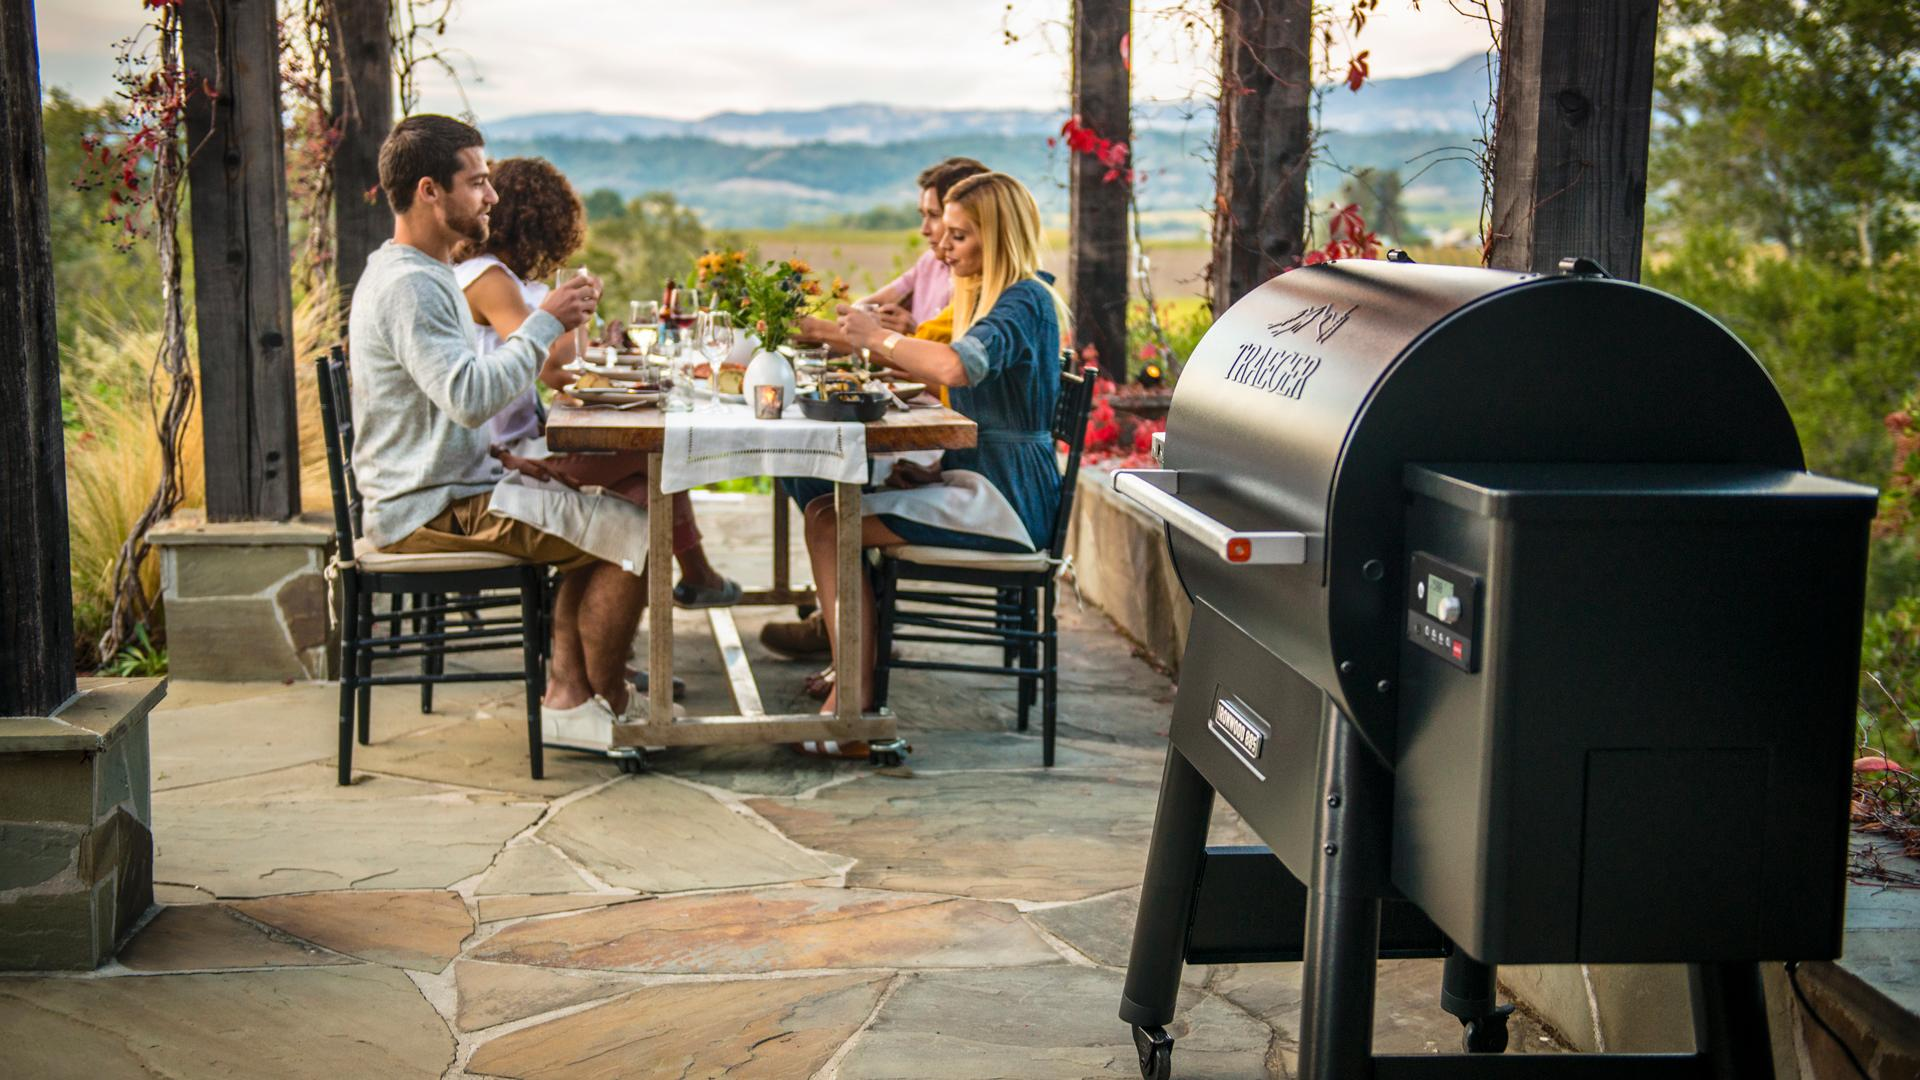 Win a Traeger Pro 575 Grill | A family enjoys dinner grilled on a Traeger